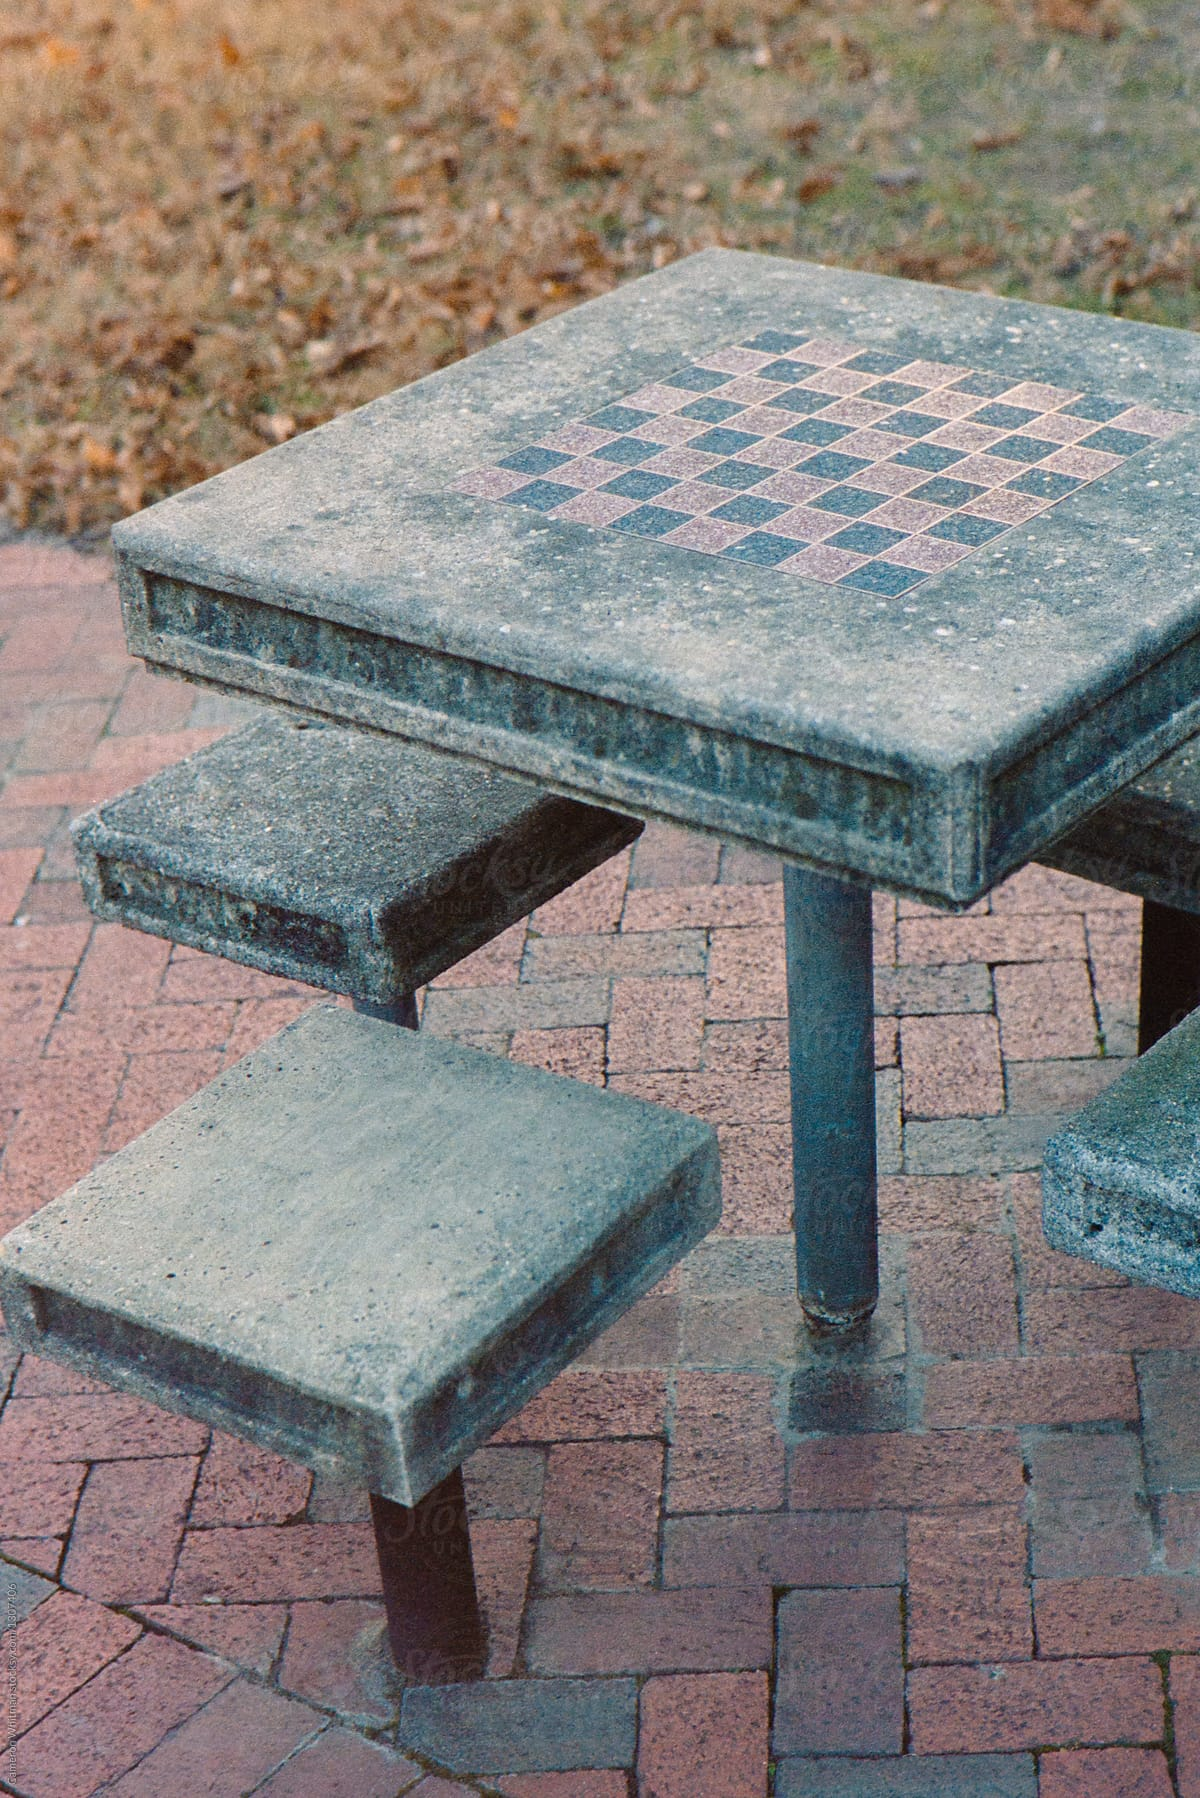 Concrete Chess Table By Cameron Whitman For Stocksy United